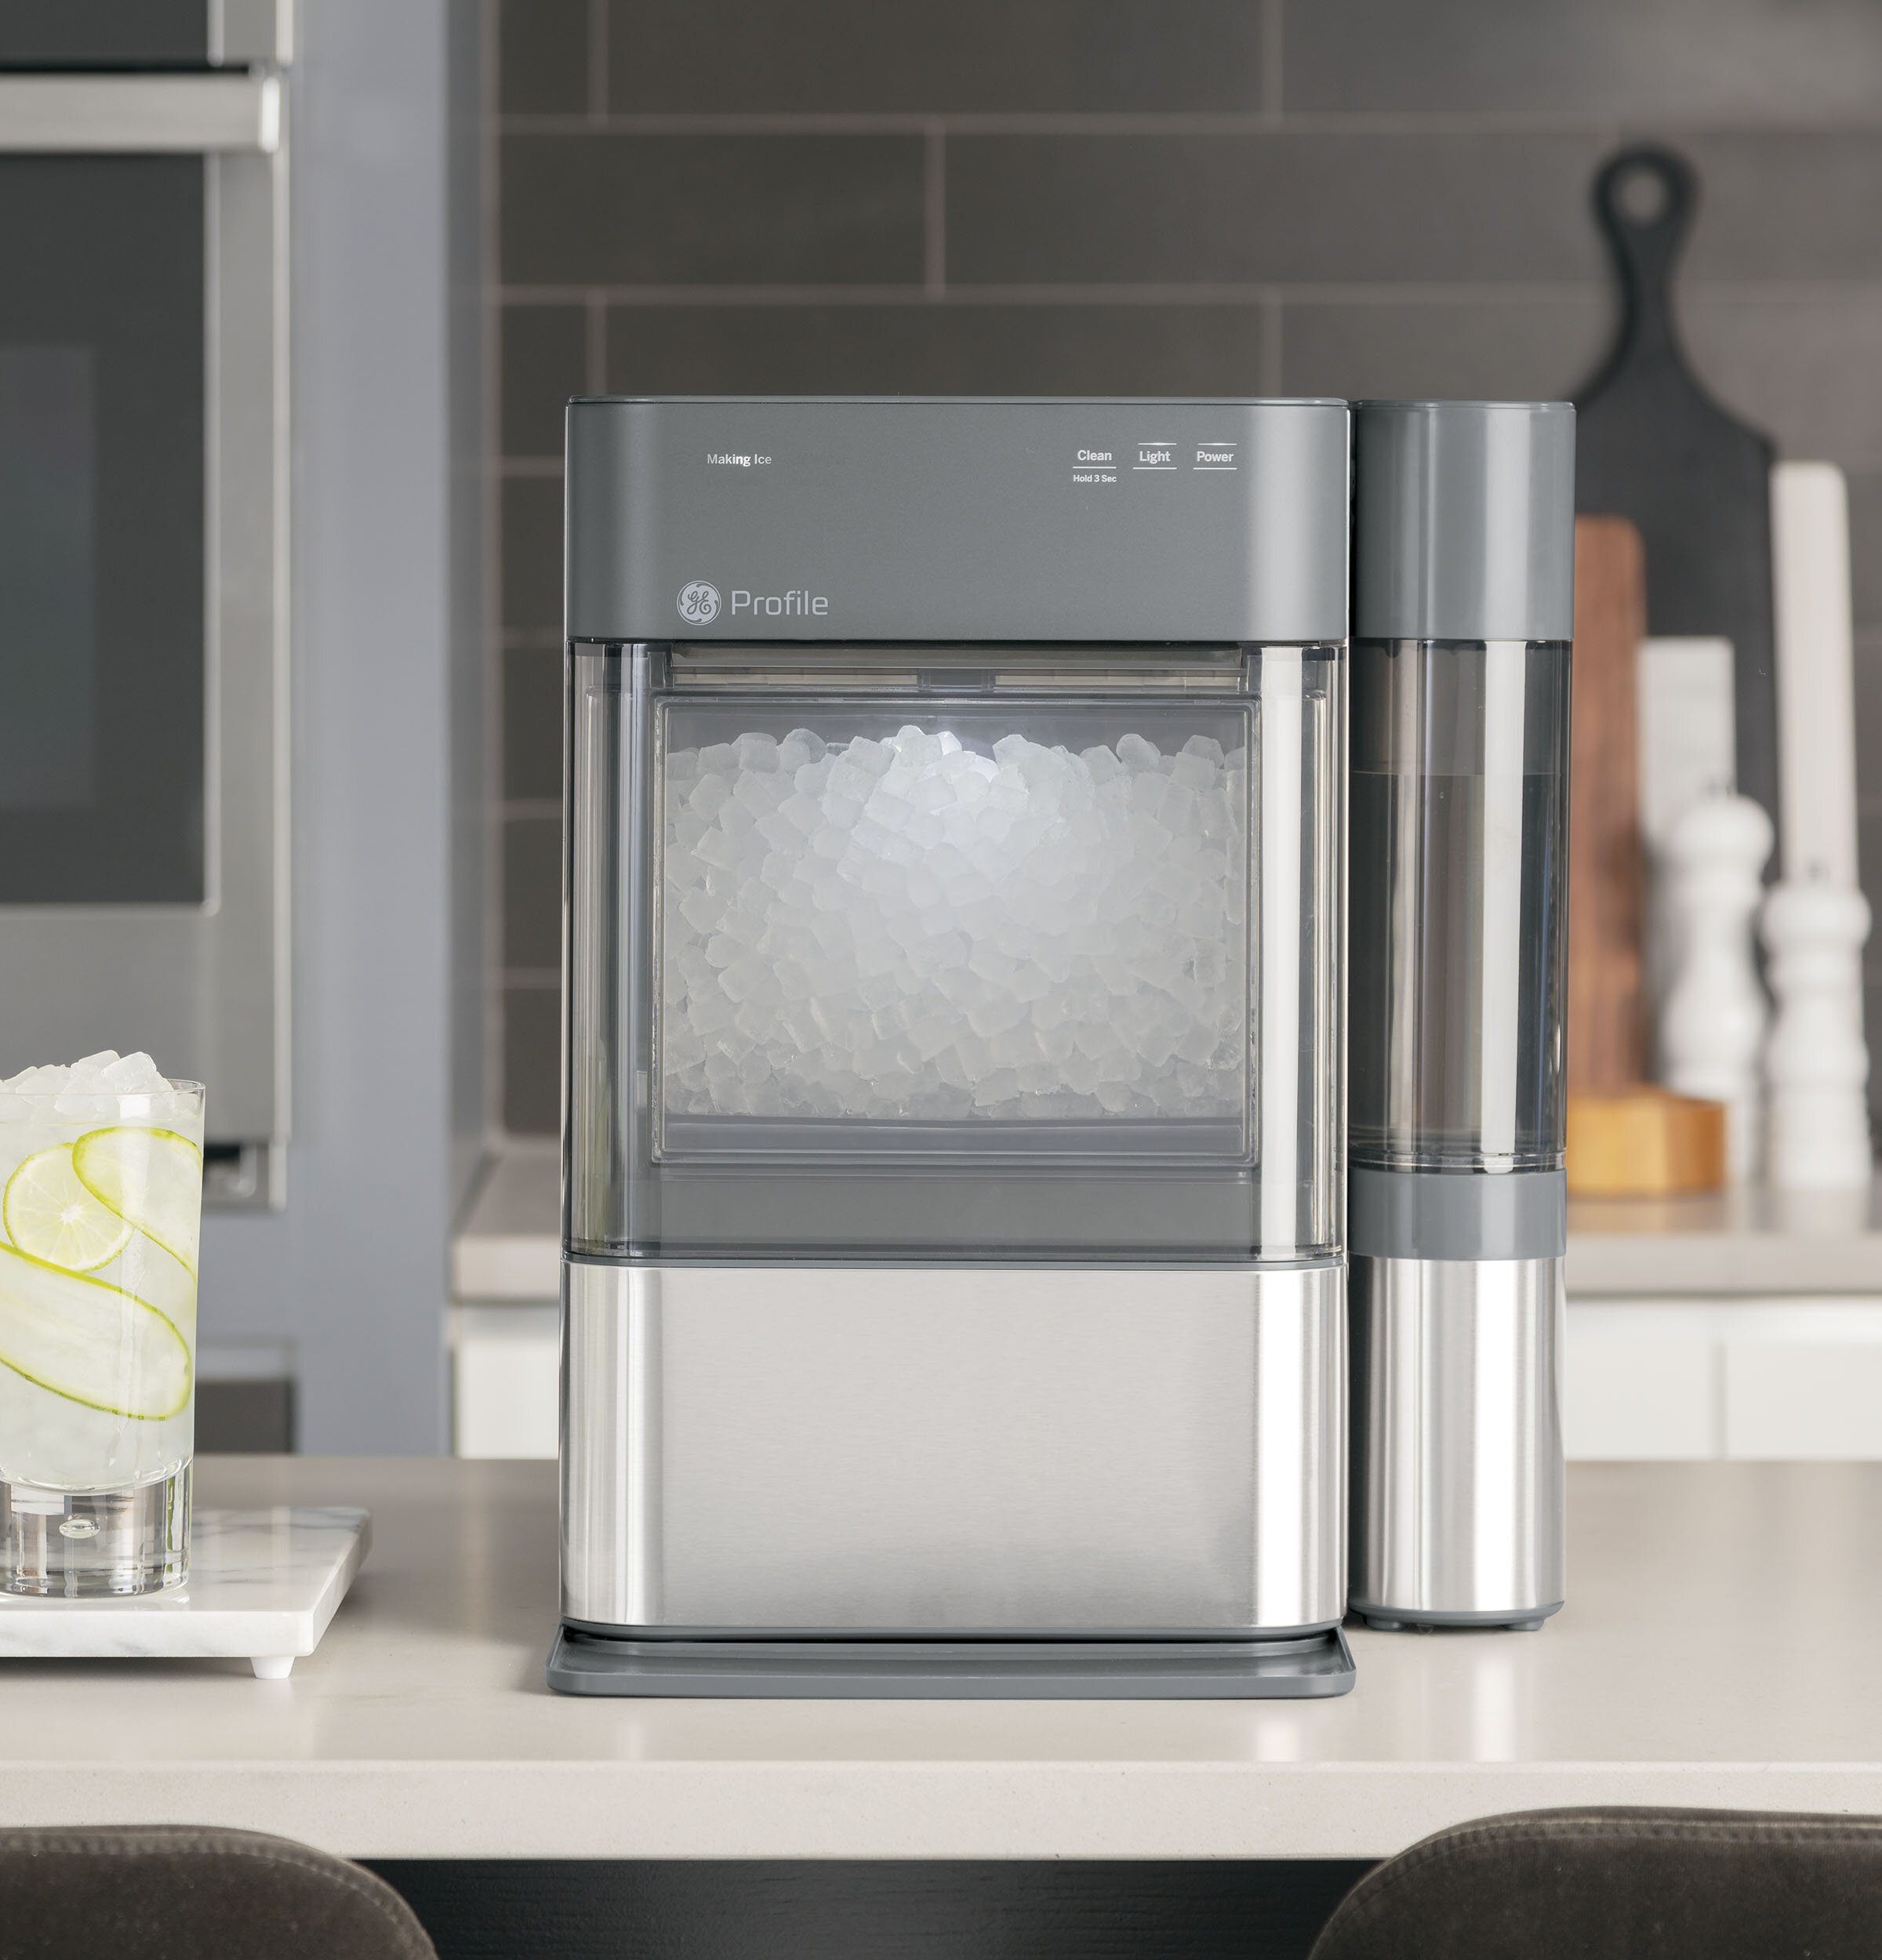 Ge Profile Opal 2 0 Nugget 24 Lb Daily Production Free Standing Ice Maker Reviews Wayfair